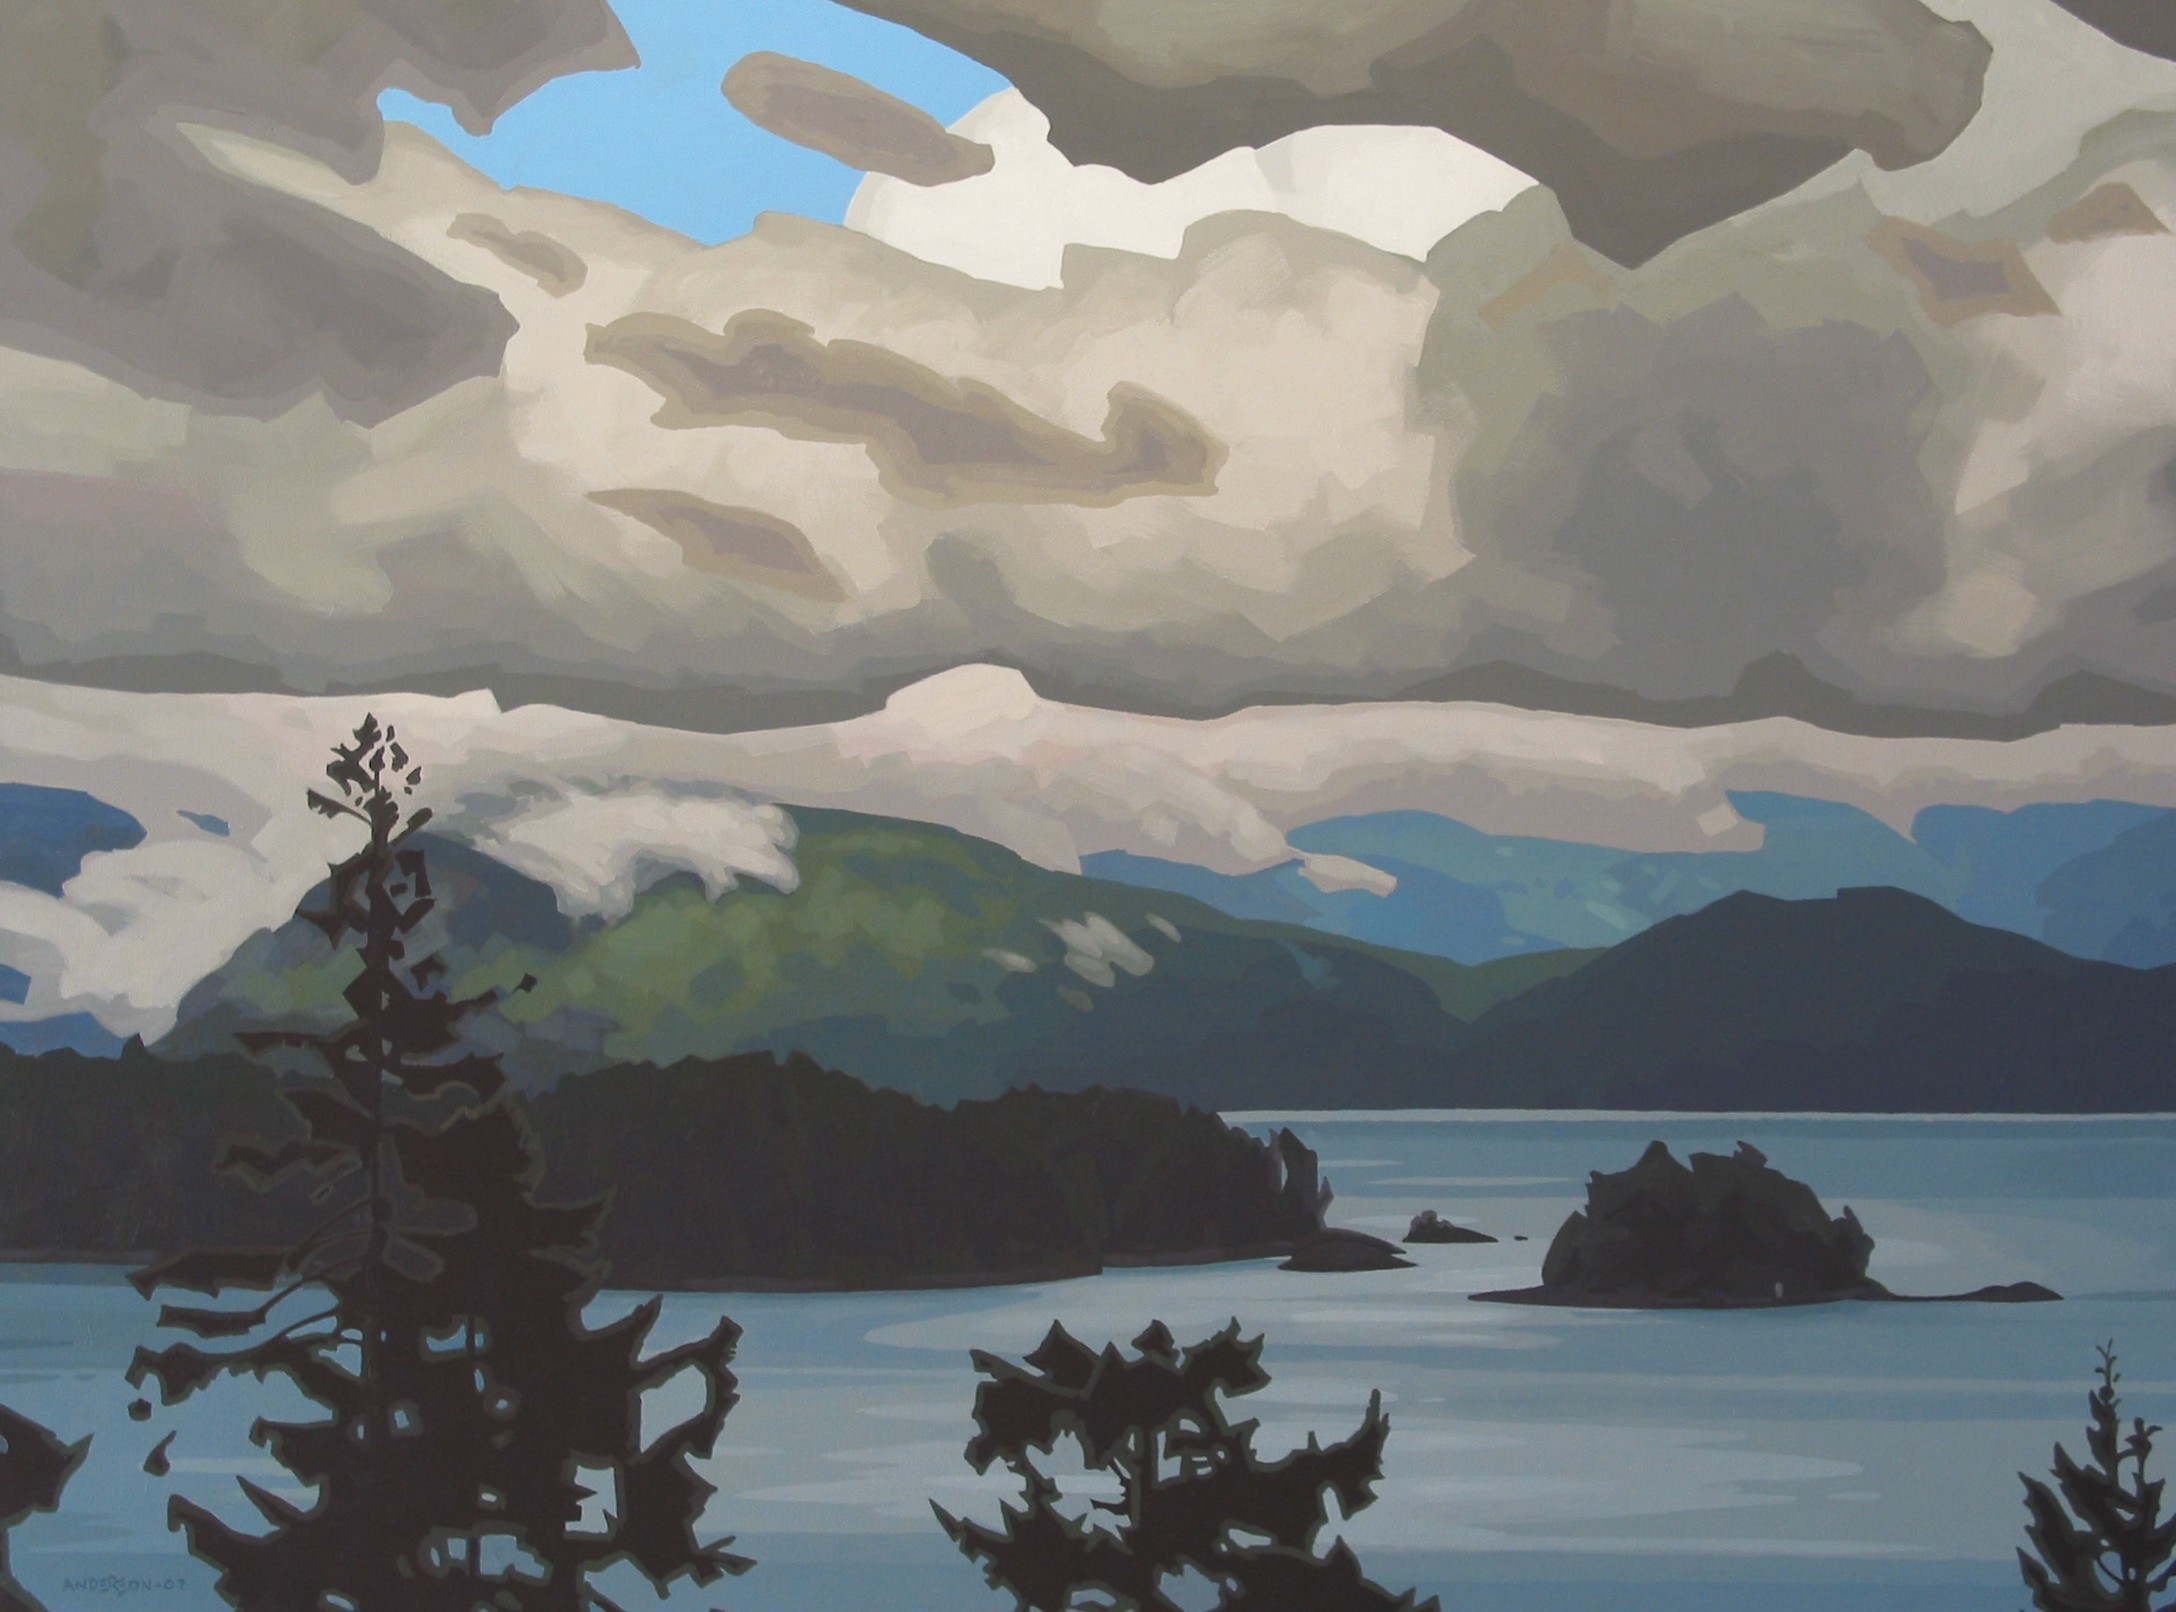 Clayton Anderson, Clayton Anderson Art, J Clayton Anderson, J Clayton Anderson Art, Artist, West Coast Artist, West Coast, West Coast Art, Canadian Art, Canadian Artist, Landscape Artist, Canadian Landscape Artist, Acrylic, Acrylic Painting, Langdale, Sunshine Coast, Sunshine Coast Art,